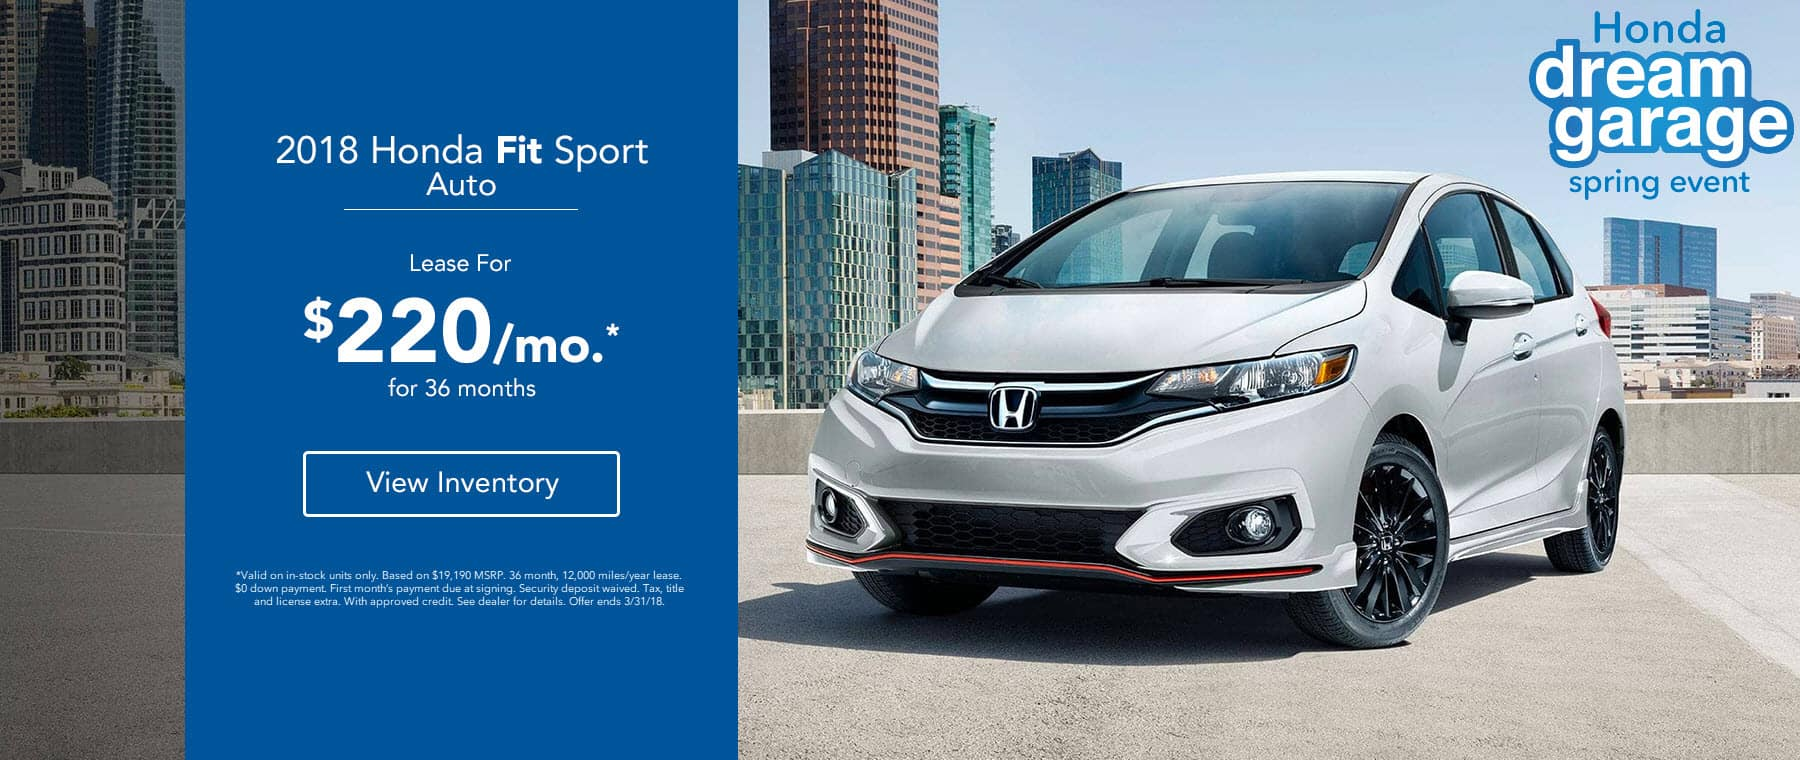 Honda Fit Sport - Lease for $220/mo